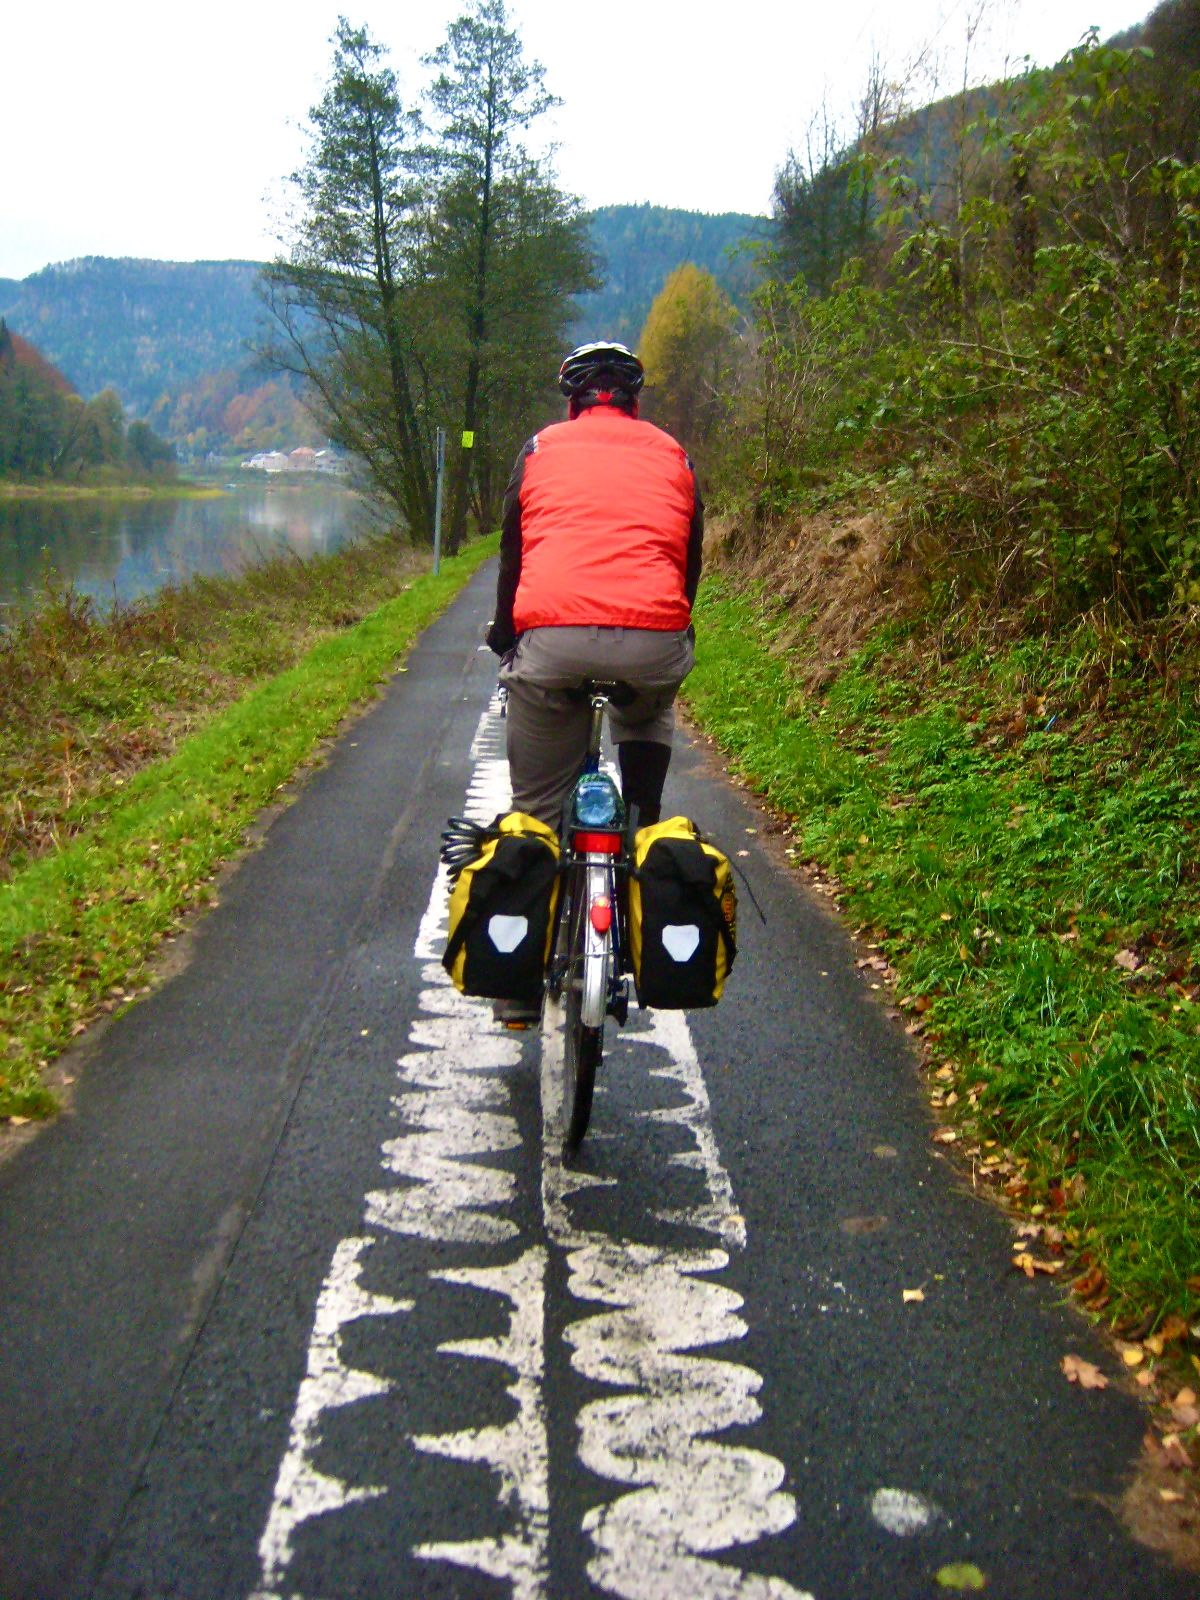 bicycling on the elberadweg; cycling on an off road path; two wheel travel